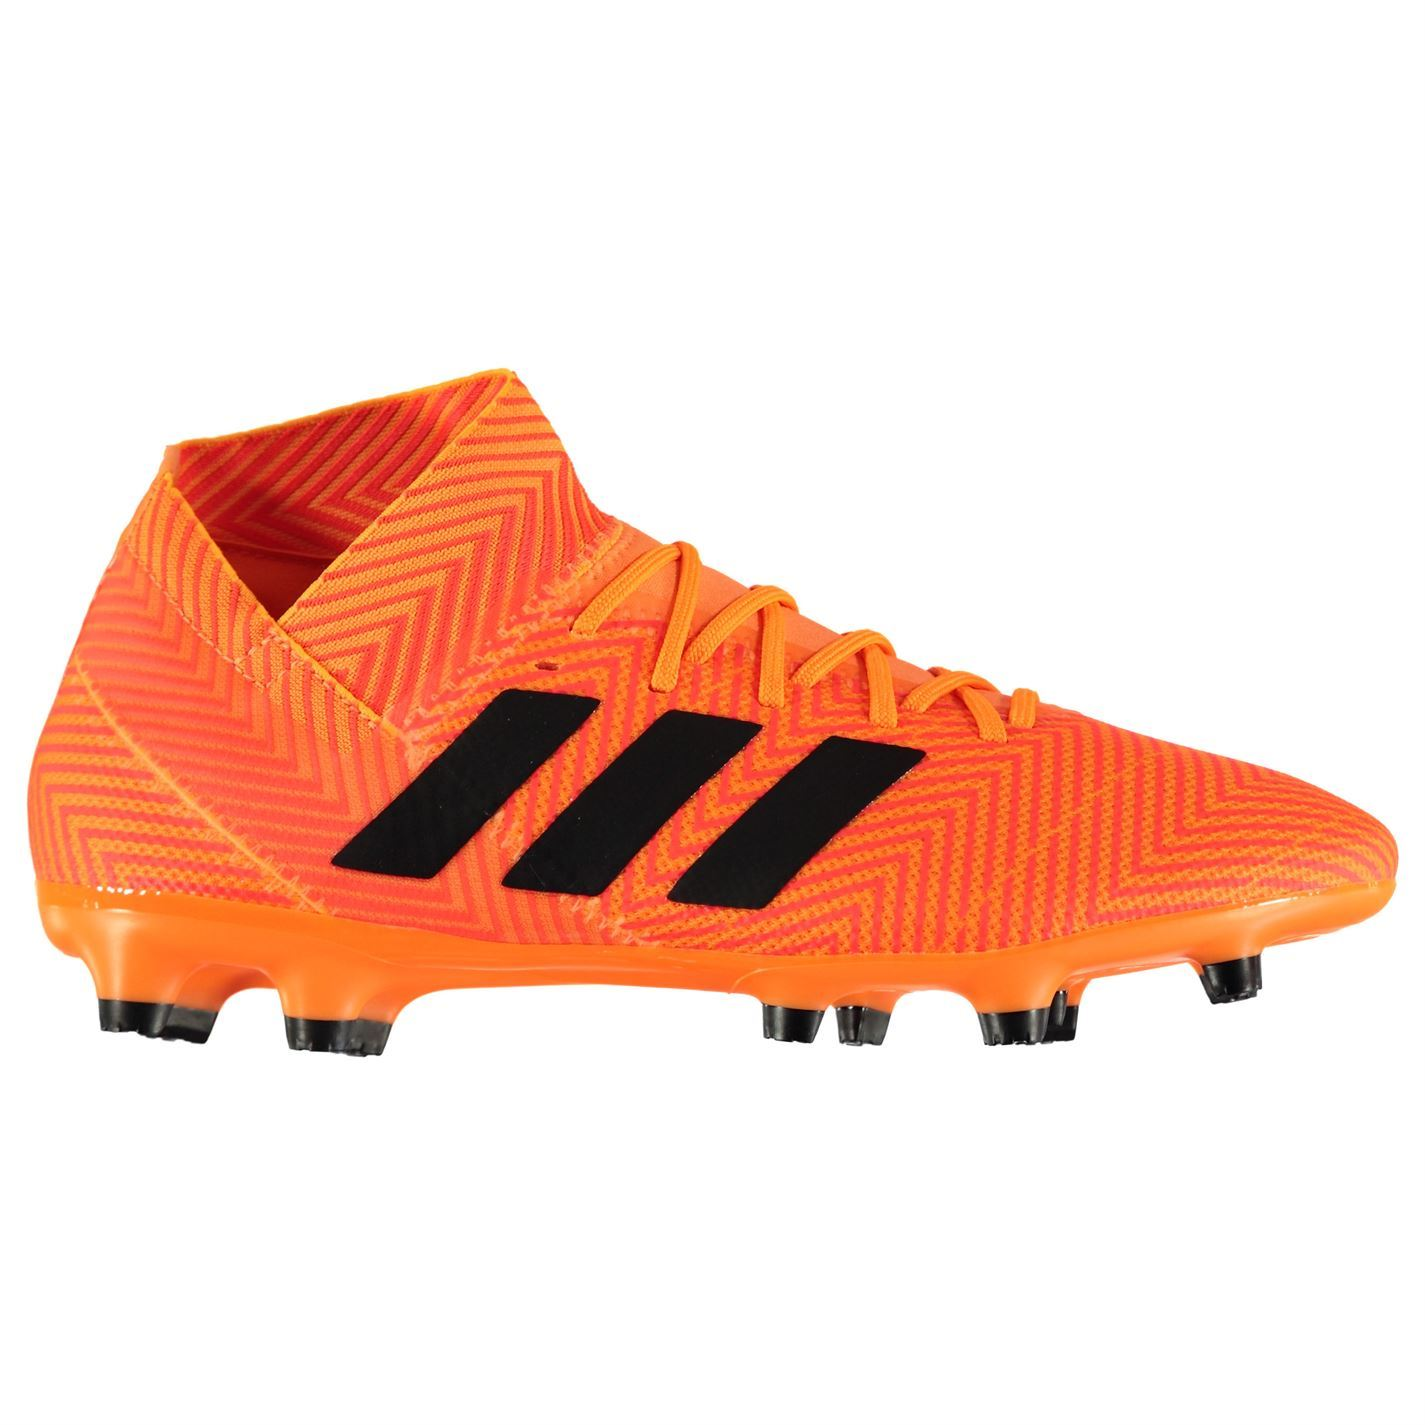 61149b7462 Details about adidas Nemeziz 18.3 Firm Ground Football Boots Mens Orange  Soccer Shoes Cleats